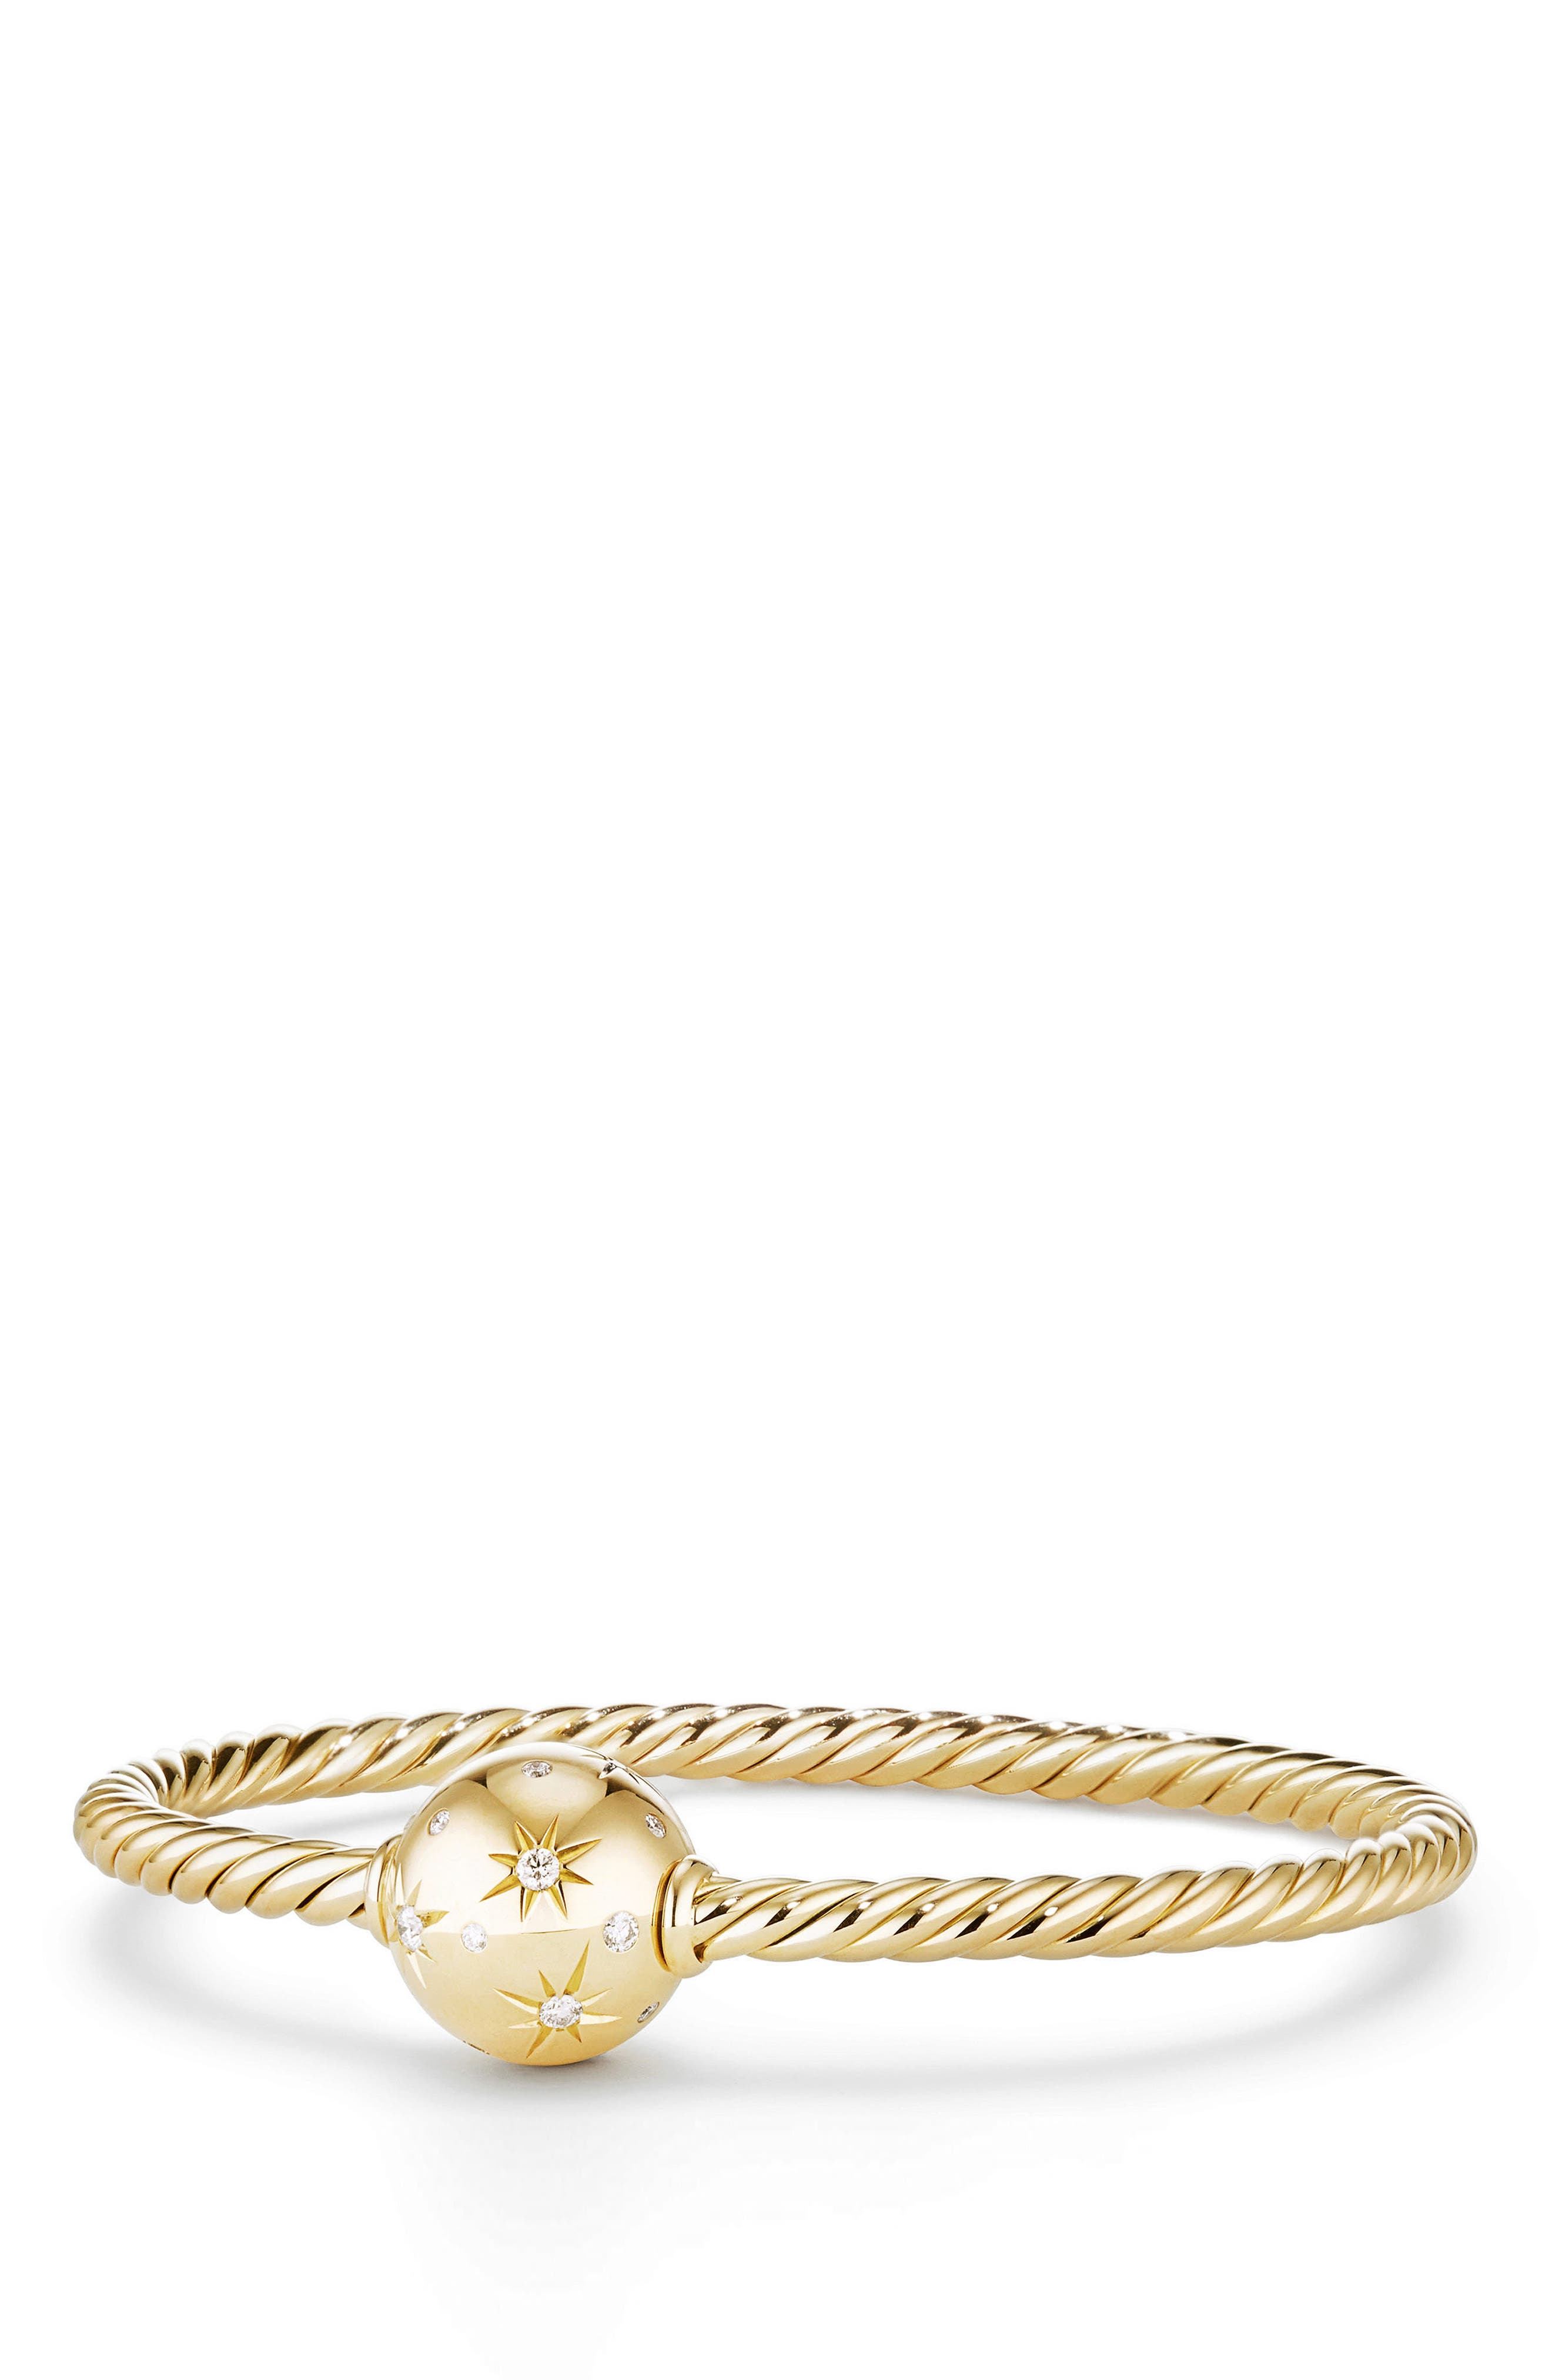 Solari Station Bracelet with Diamonds in 18K Gold,                         Main,                         color, YELLOW GOLD